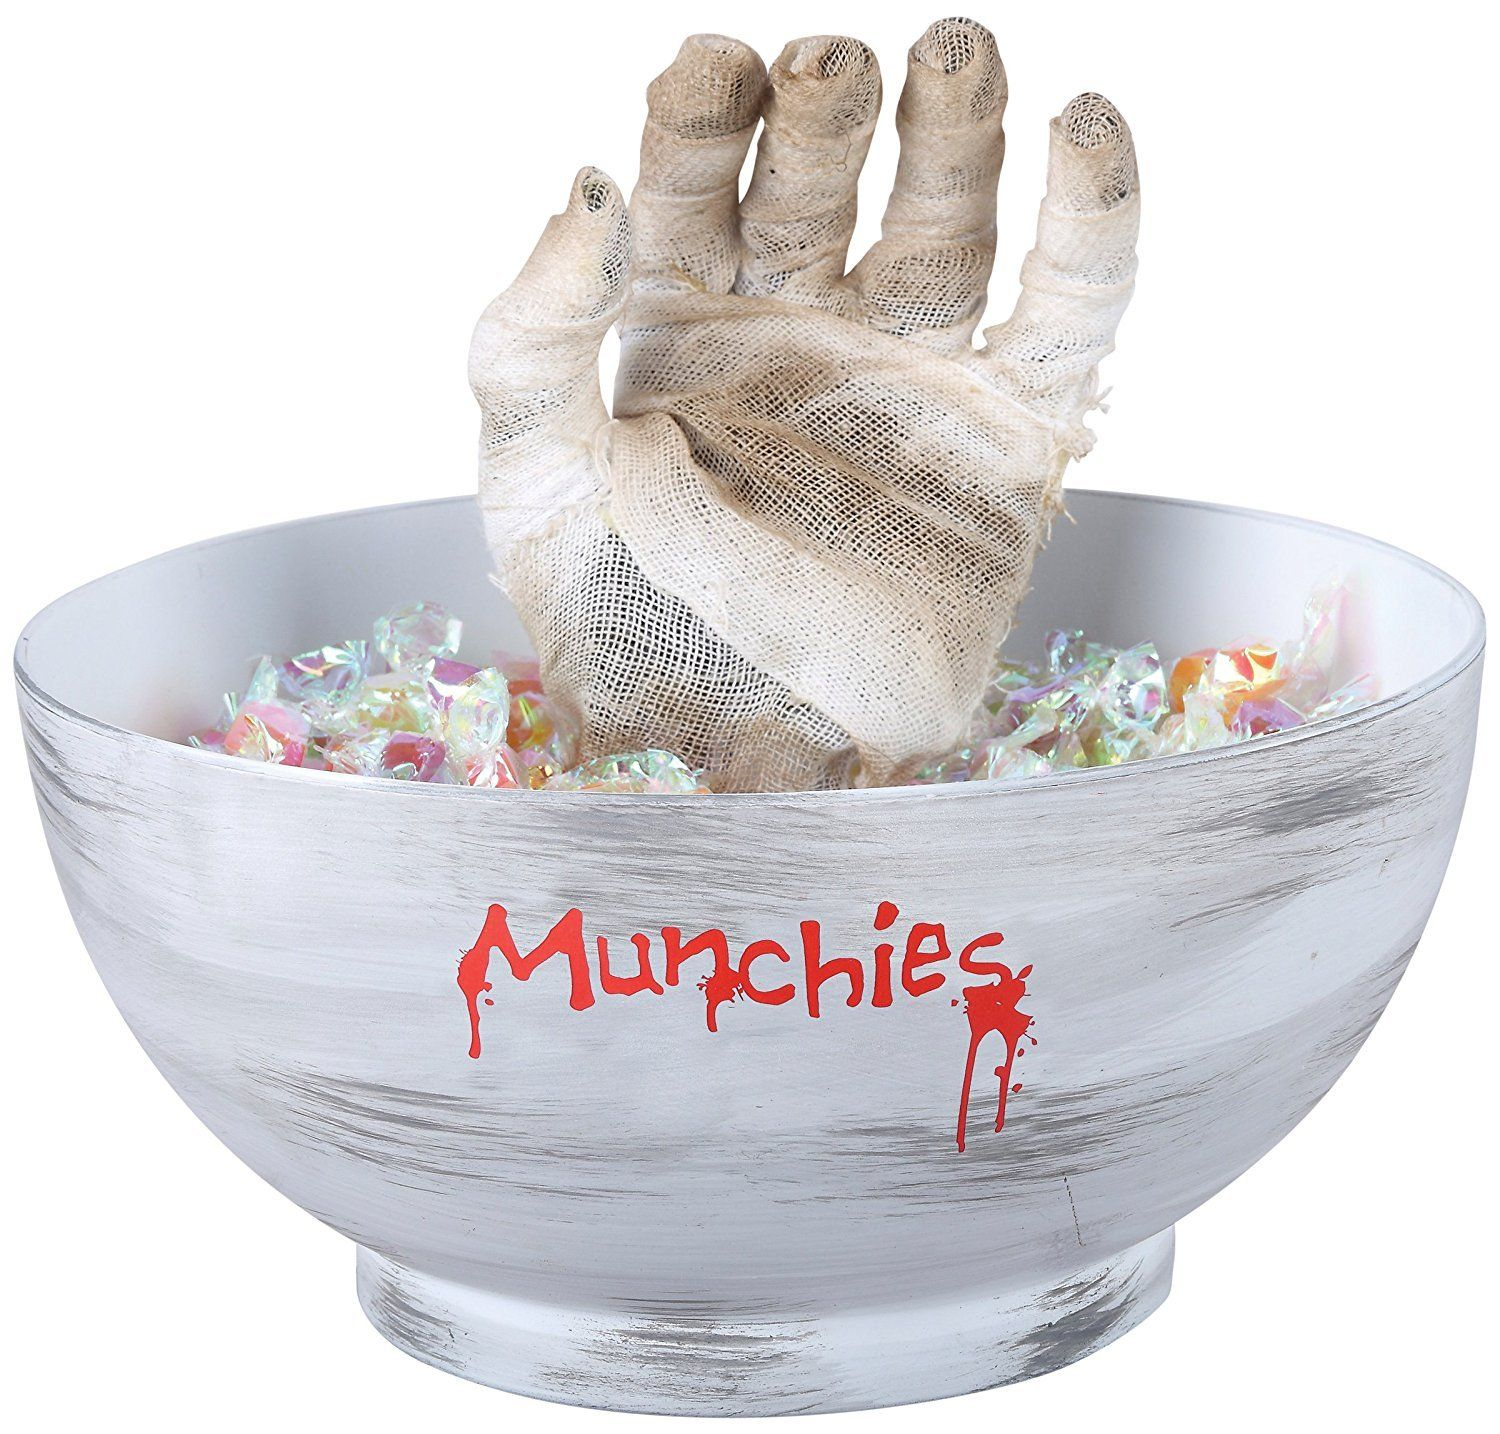 Animated Mummy Hand Candy Bowl Trick or Treat Dish